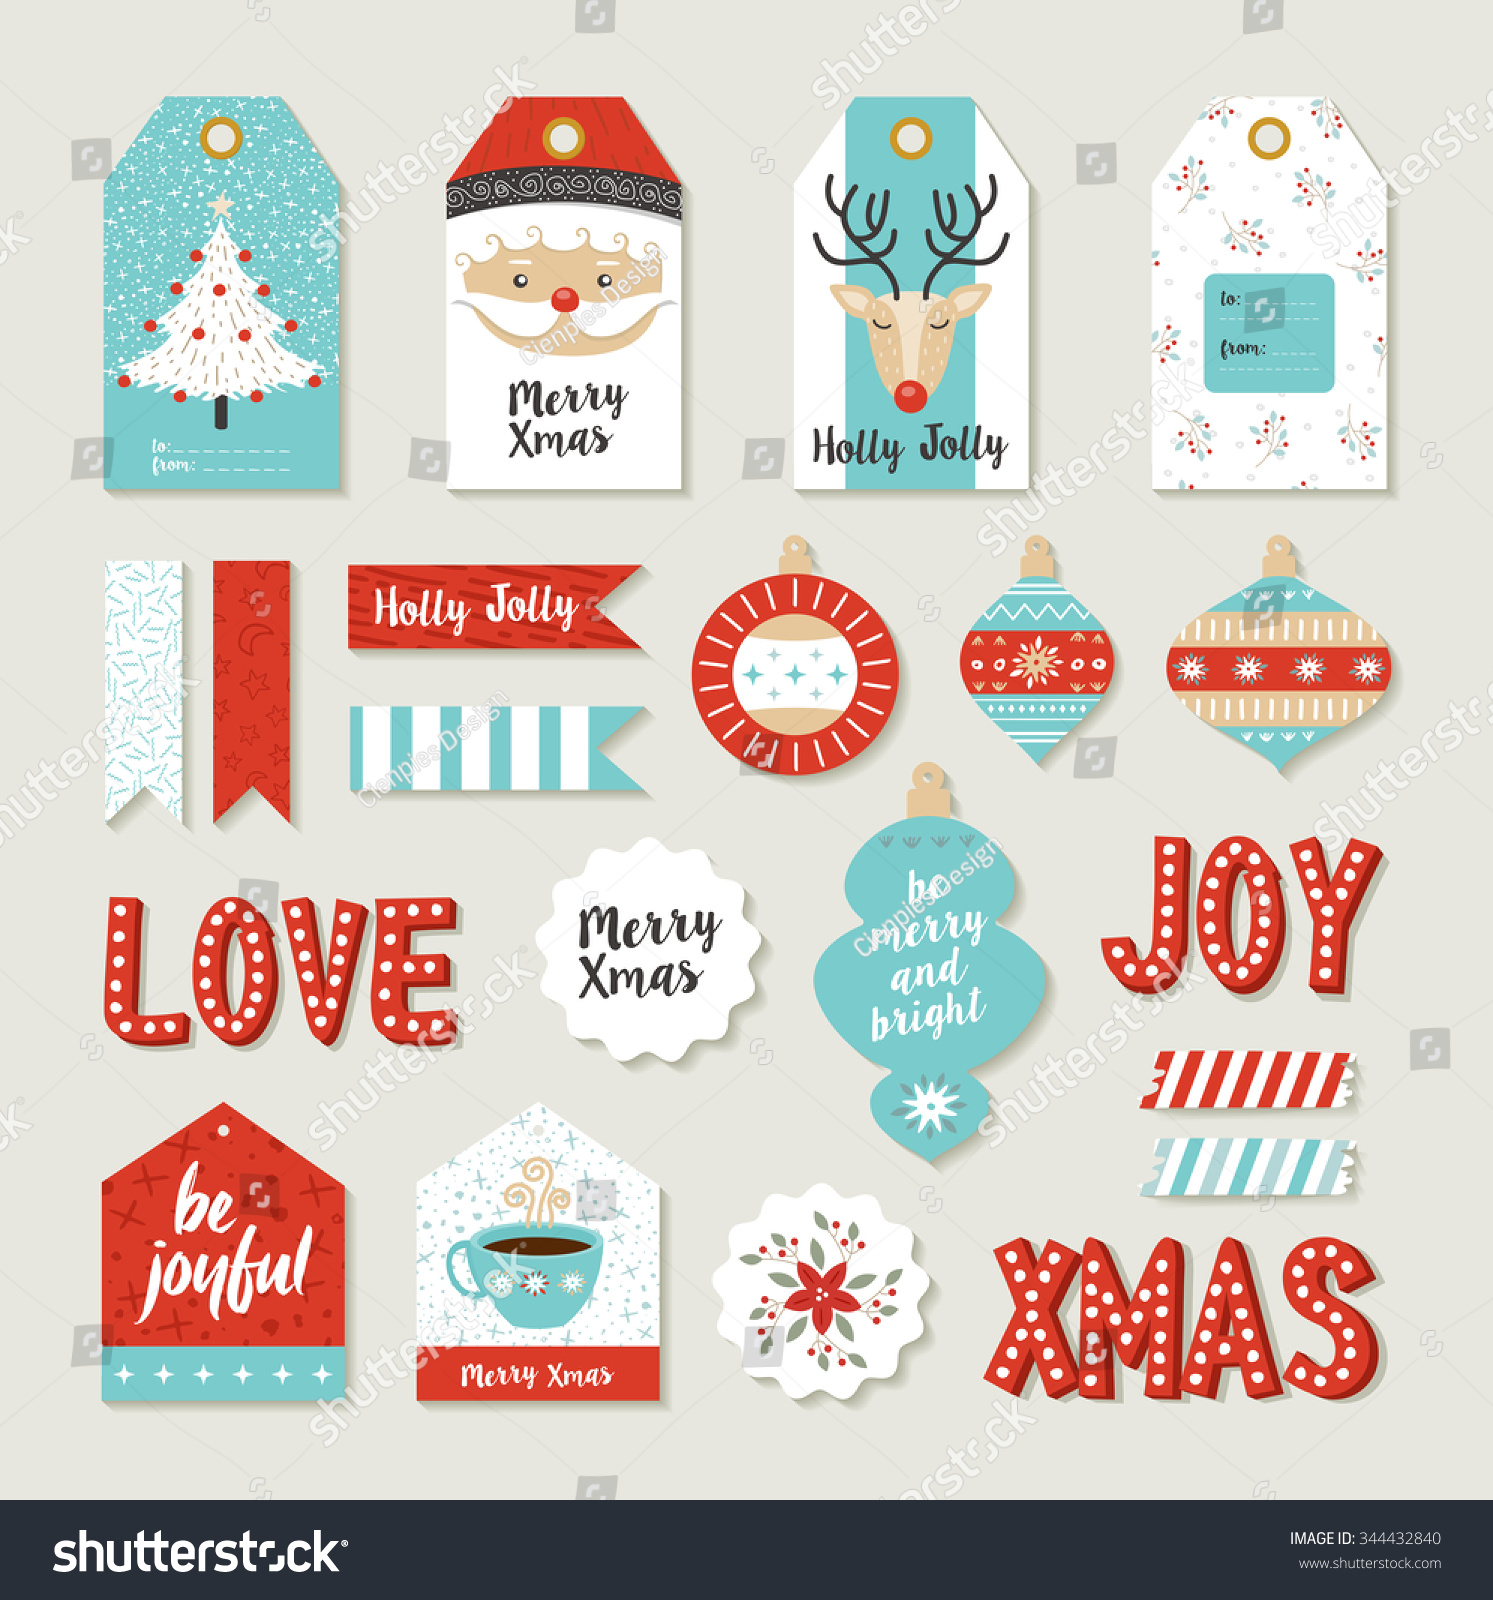 Merry christmas scrapbook set of printable DIY tags signs and banners for holiday gifts or xmas decoration